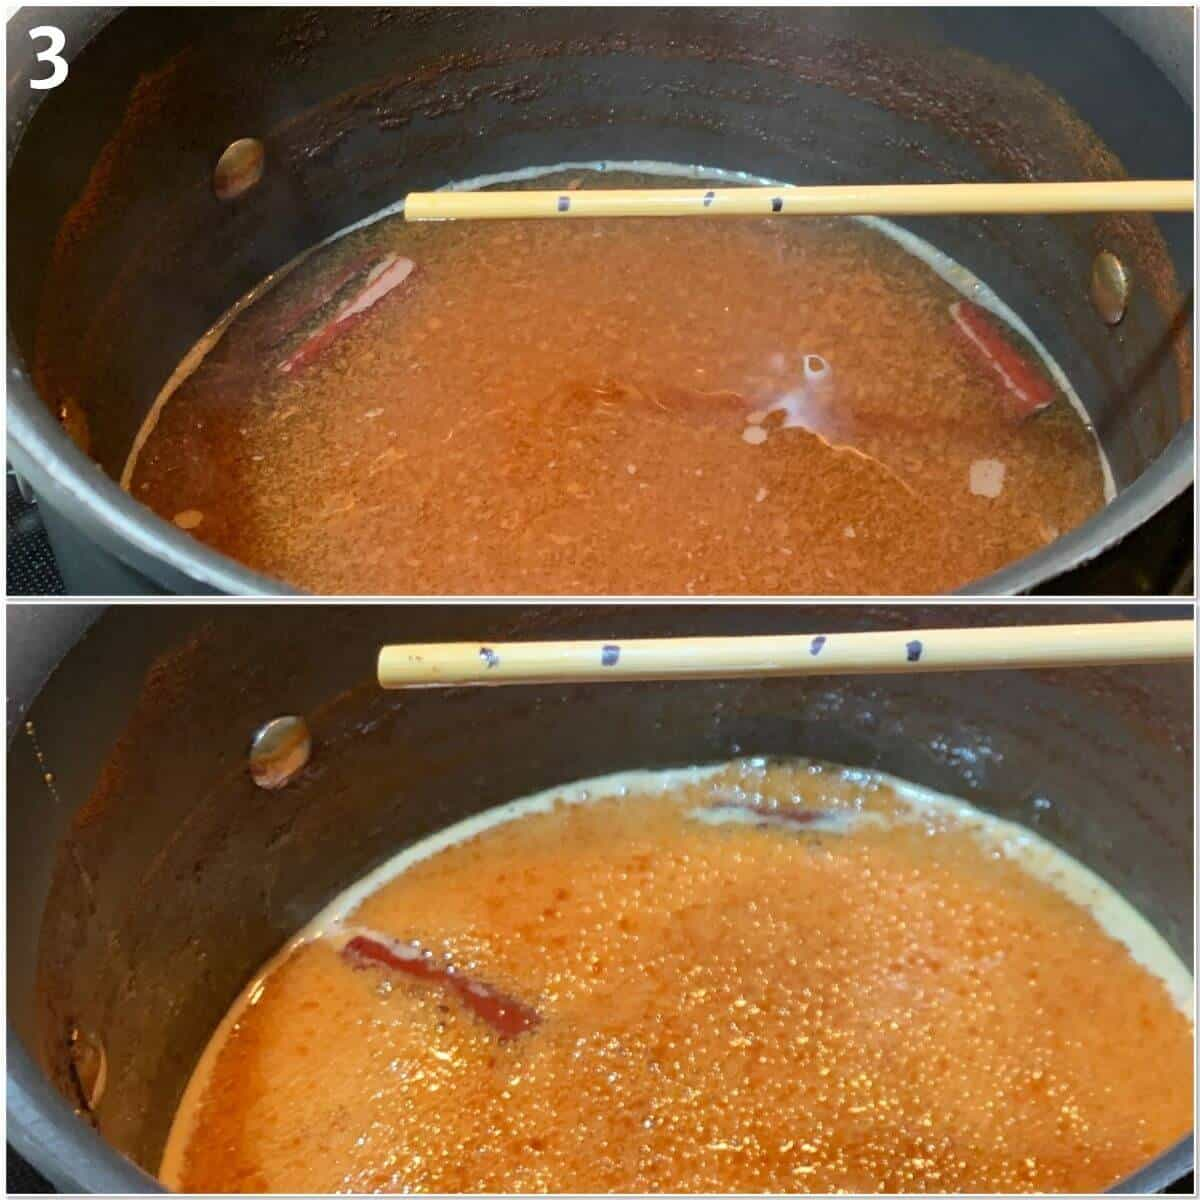 Collage of reducing apple cider in a pot after 2 and 3 hours.